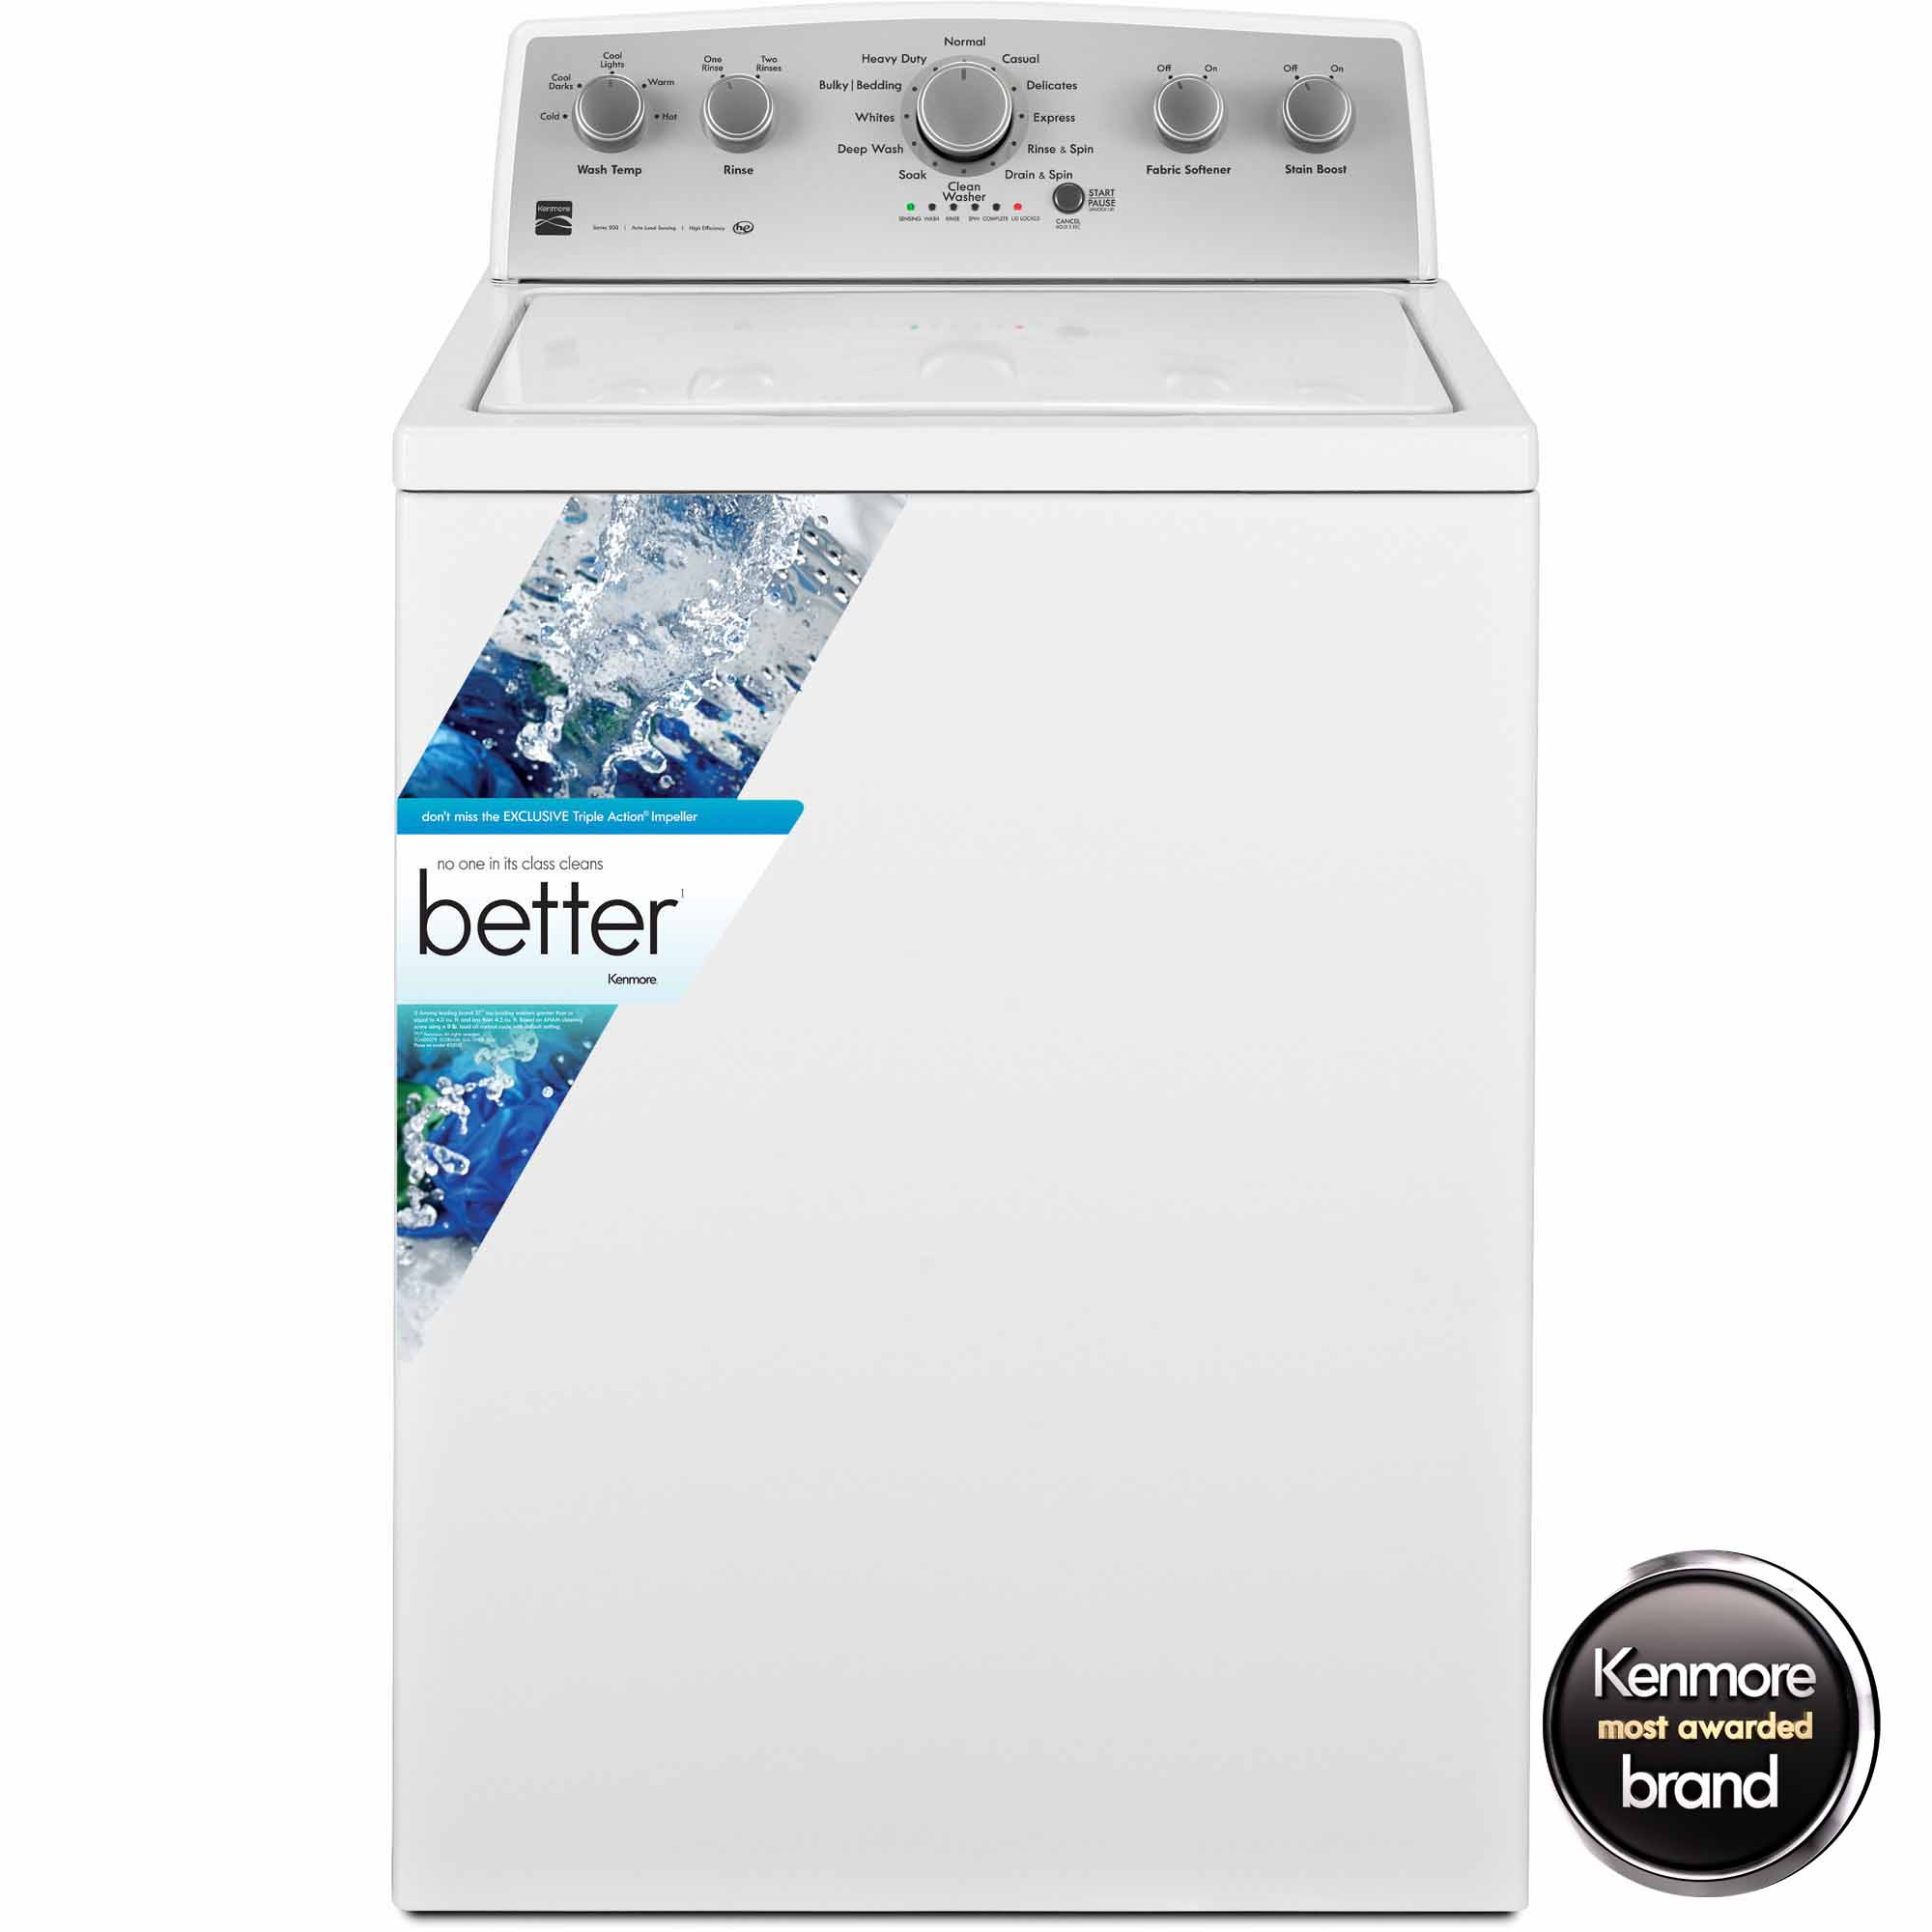 Kenmore 25132 top load 4 3 cu ft washer review best Best washer 2015